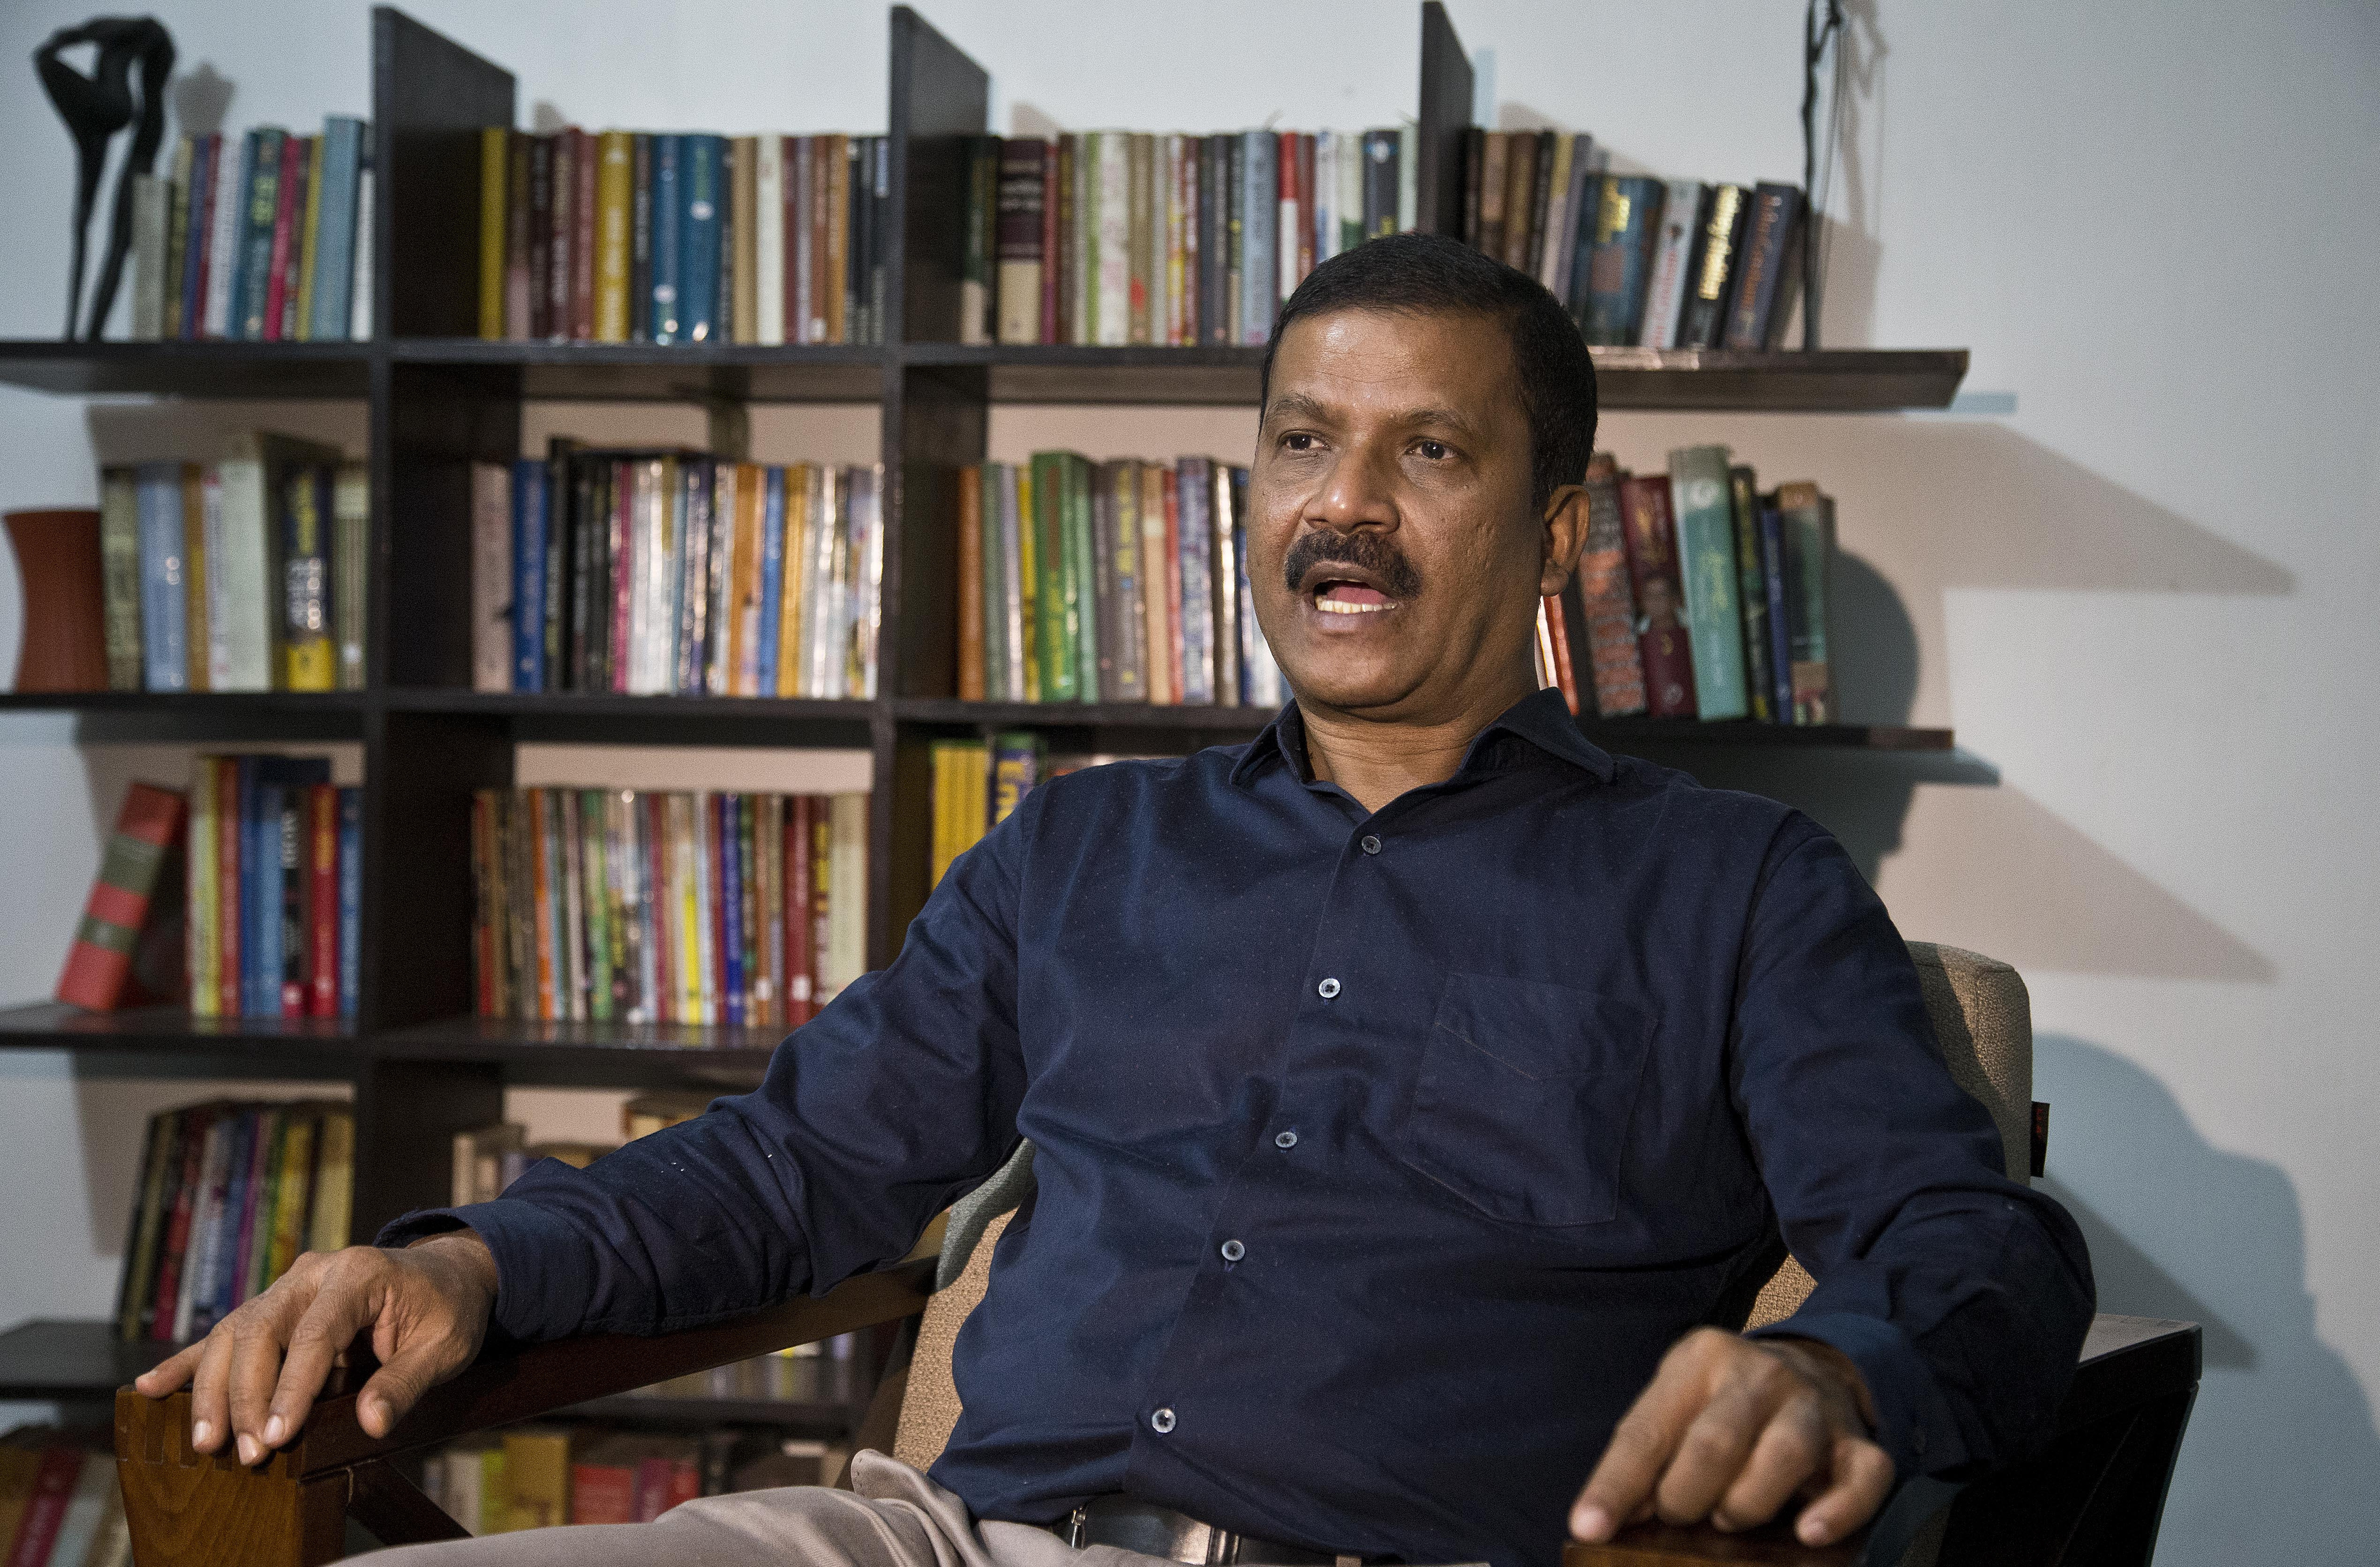 Asif Nazrul, a law professor at Dhaka University and a government critic, speaks to the Associated Press in Dhaka, Bangladesh, Jan. 1, 2019.